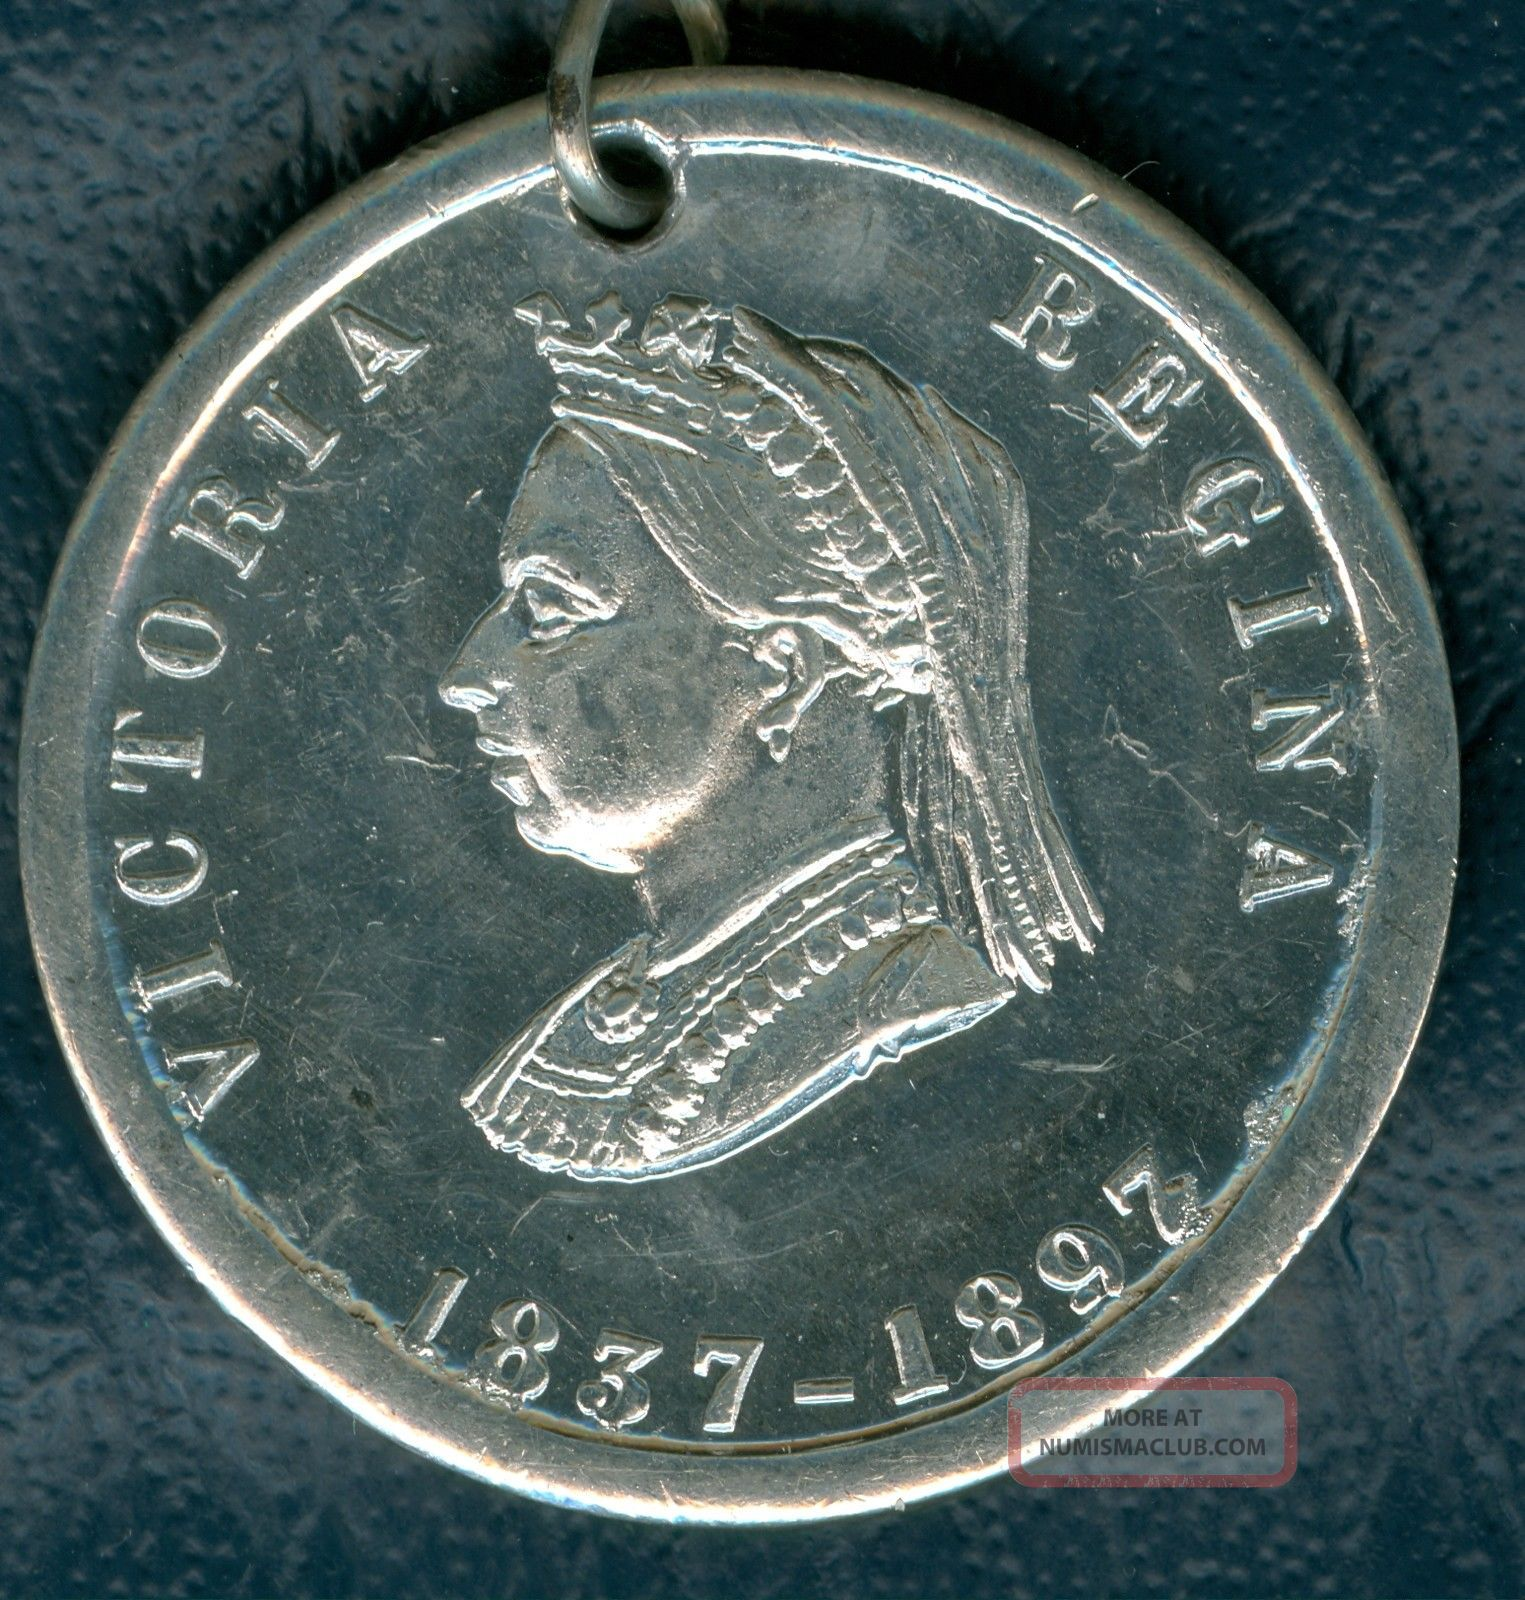 1897 Queen Victoria Sixty Year Jubilee Celebration Medal,  Small Exonumia photo